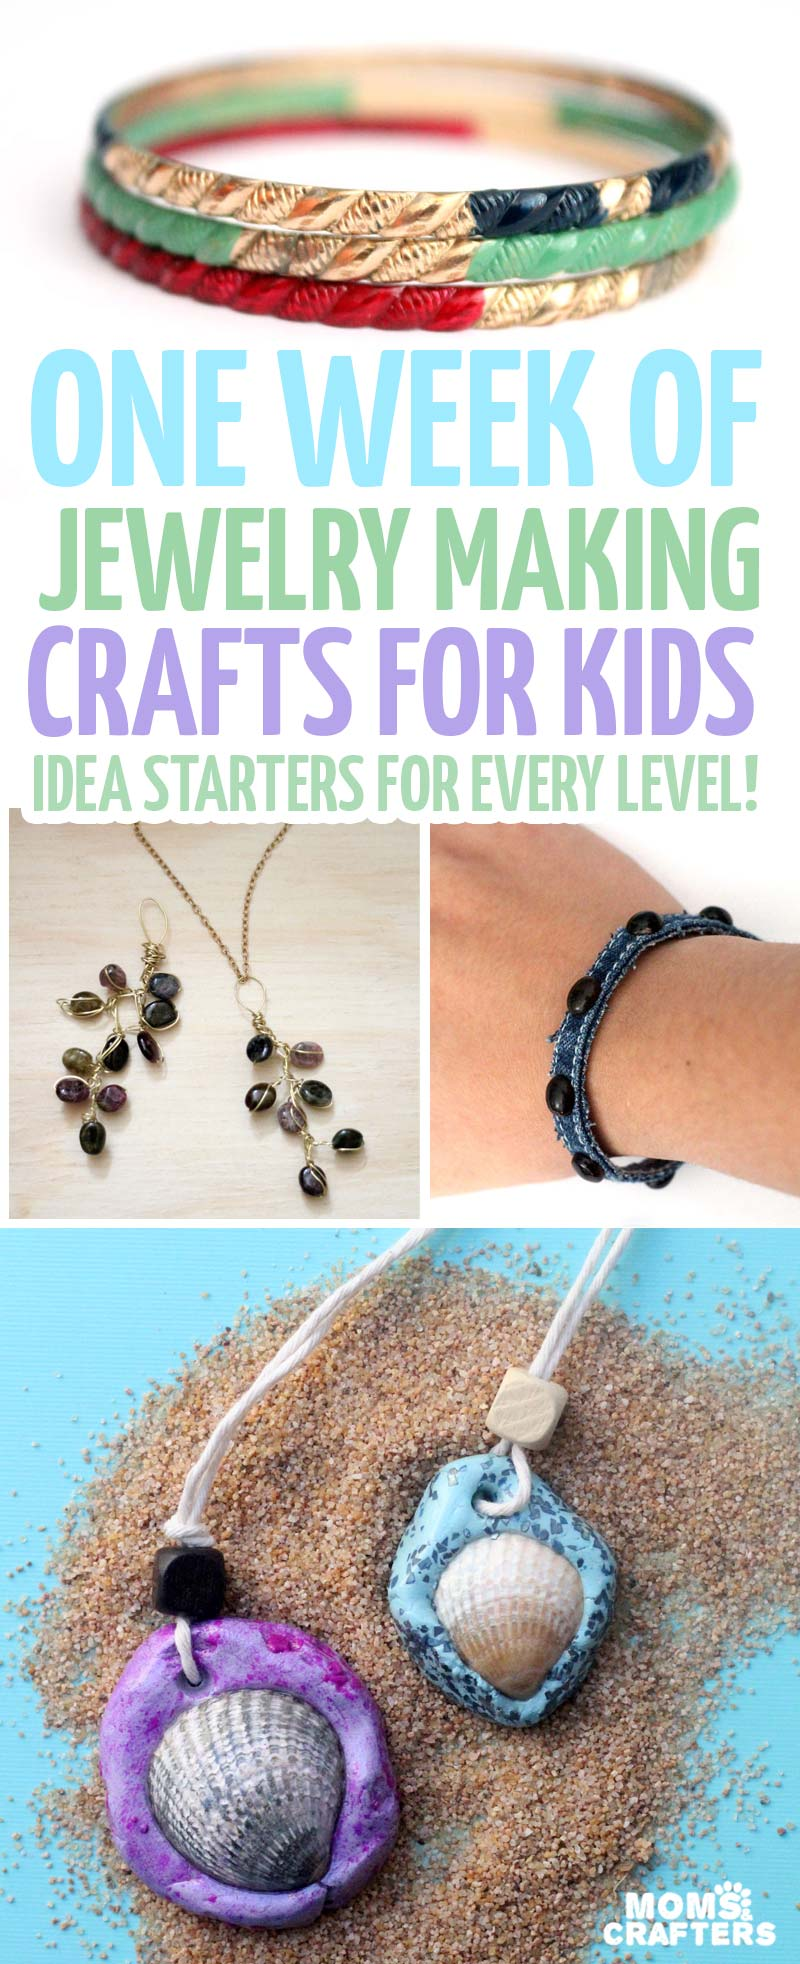 I hope you enjoy this one week of jewelry making crafts for kids - tons of jewelry making ideas for beginners and idea starters for jewelry crafters on any level = including beginners!